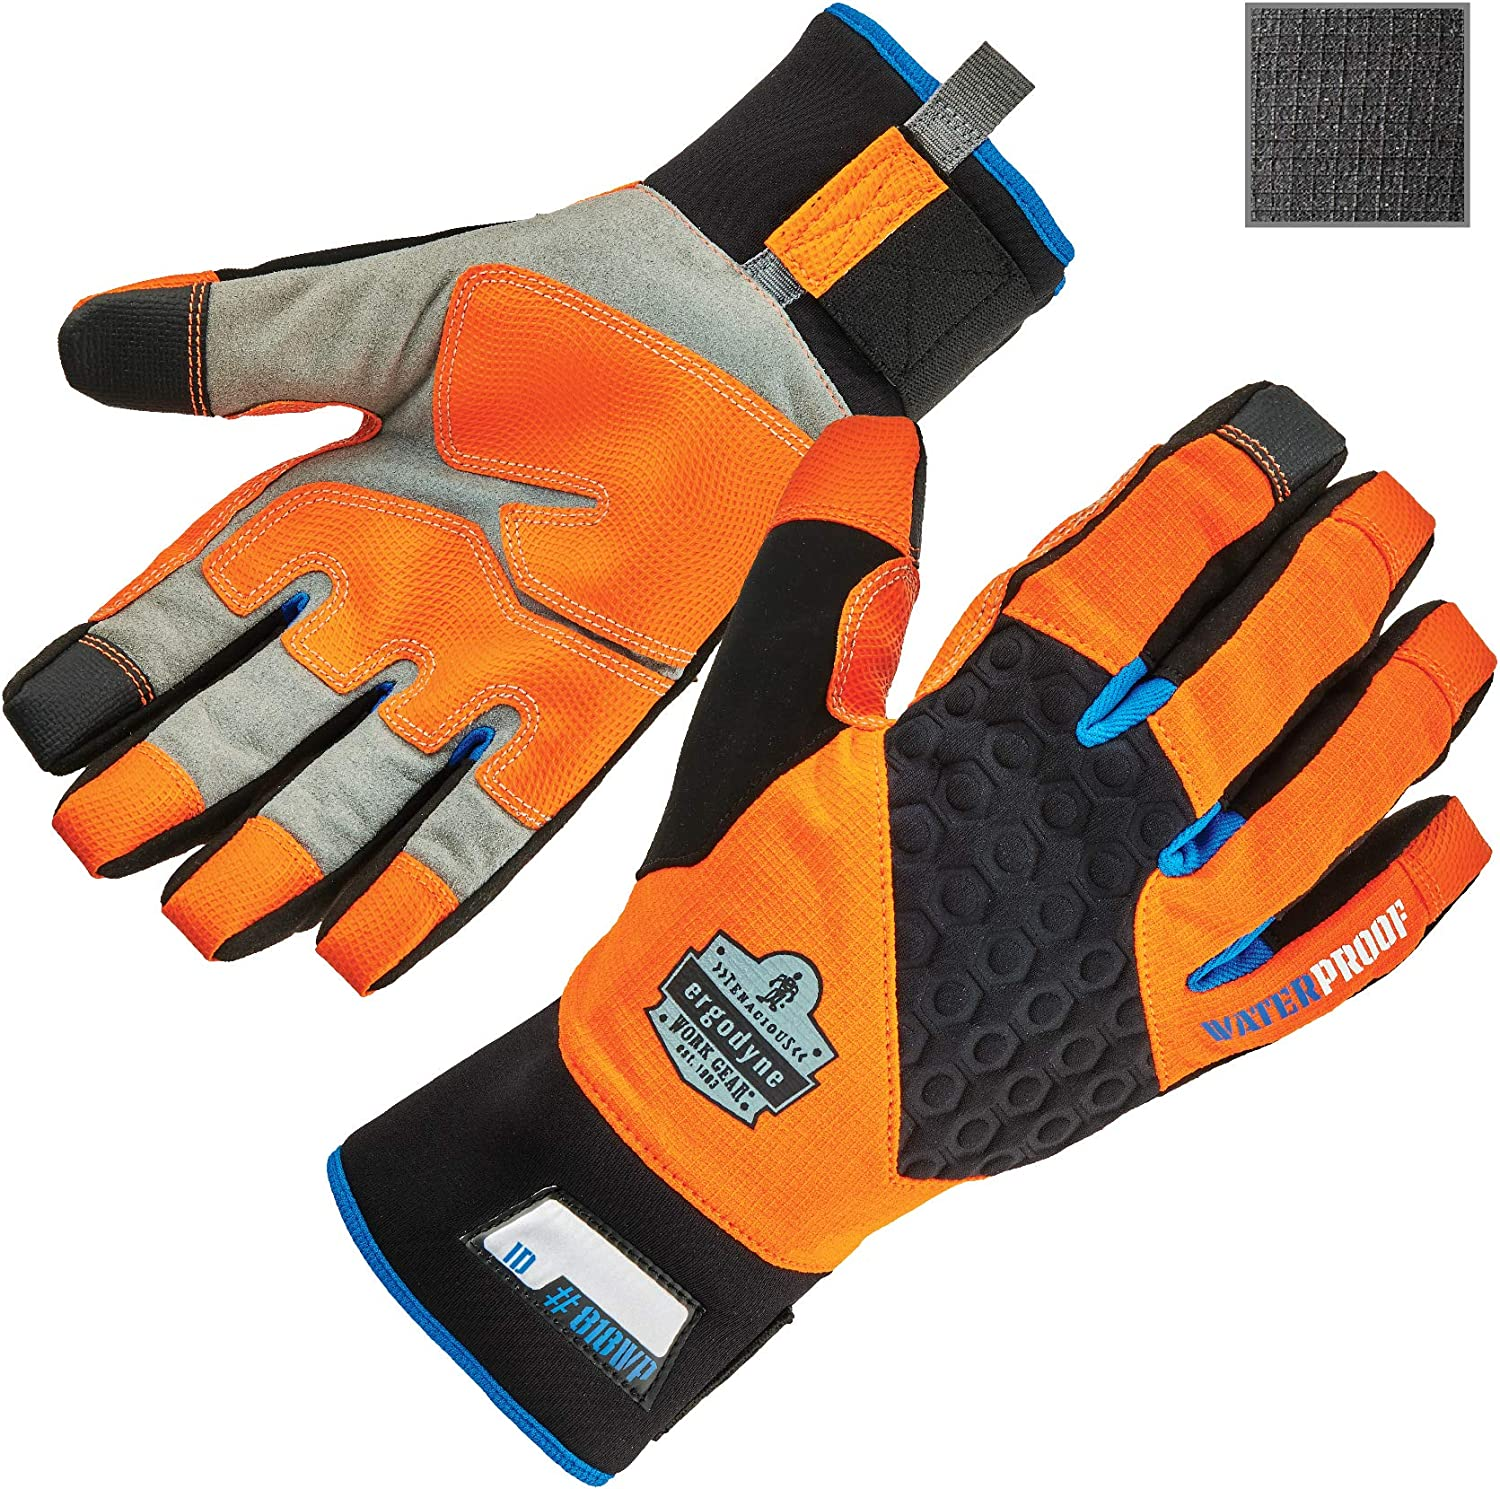 Waterproof Work Gloves, High Visibility, Thermal Insulated, Touchscreen, Enhanced Grip, Ergodyne ProFlex 818WP